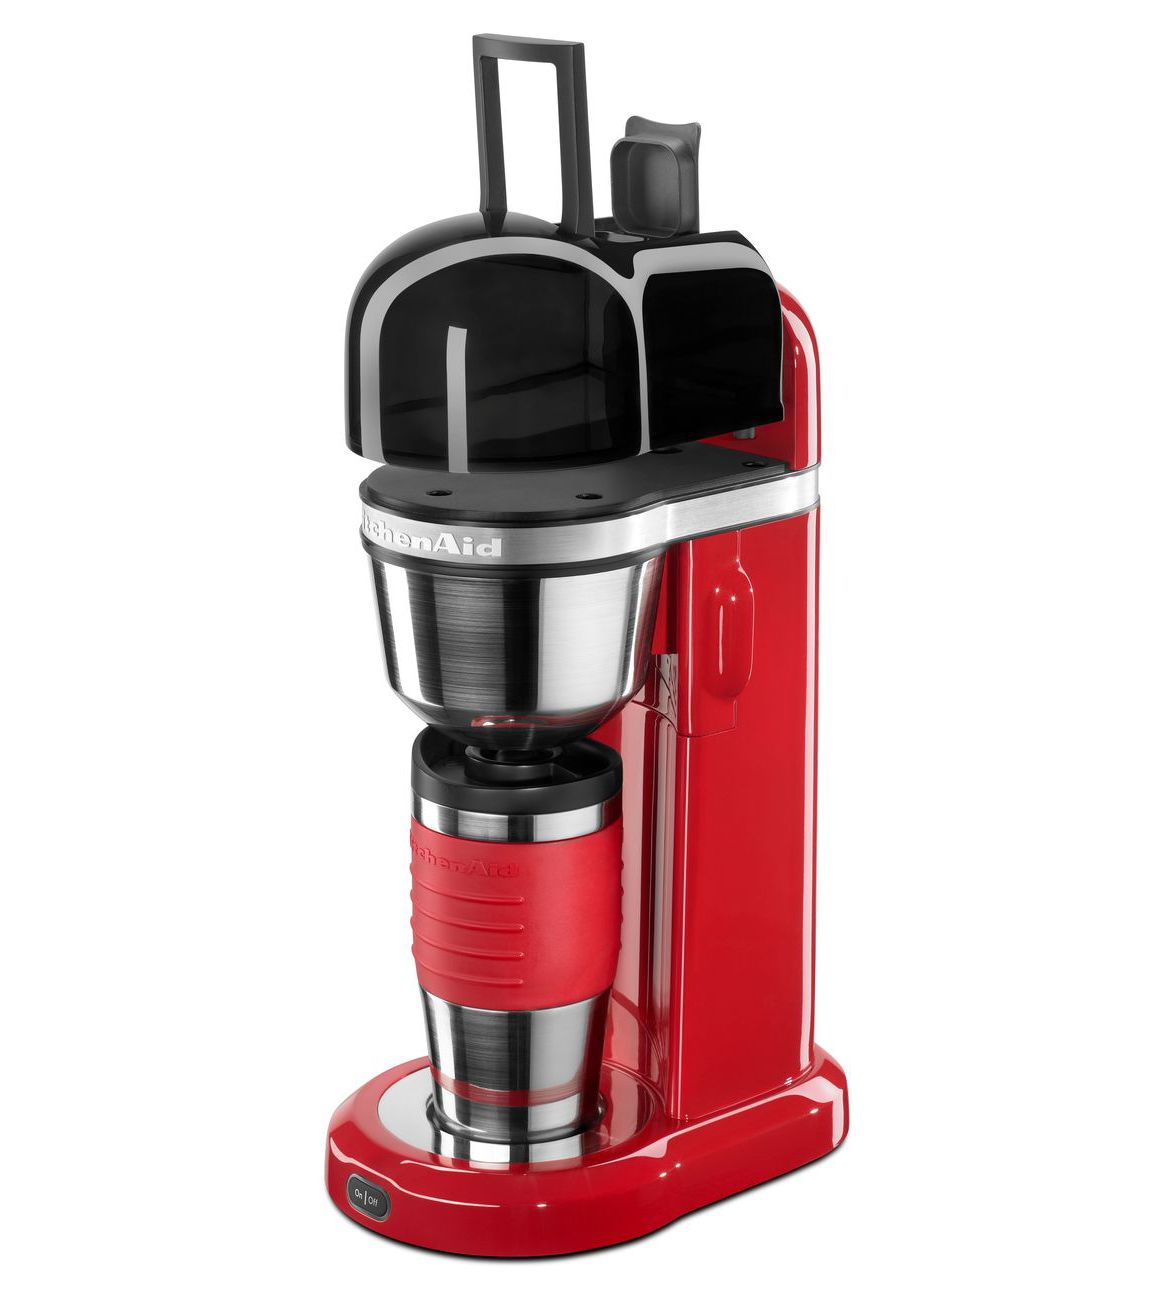 cafetiere kitchenaid 5kcm0802eer